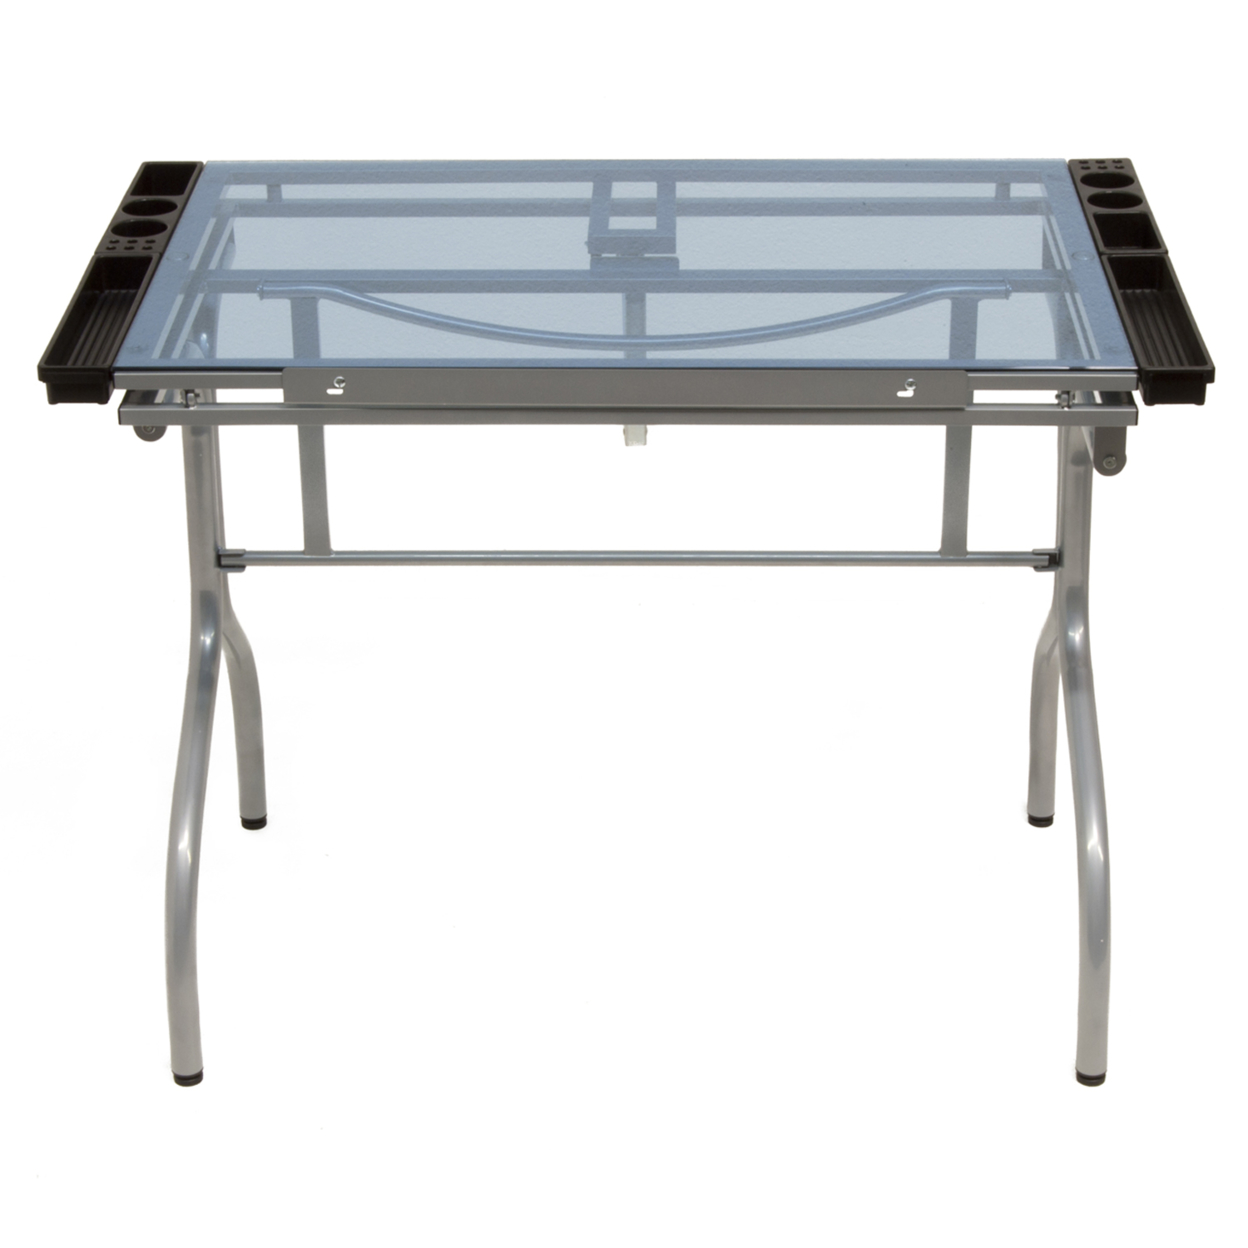 Craft Accents Home Office Folding Craft Table Silver Blue Glass